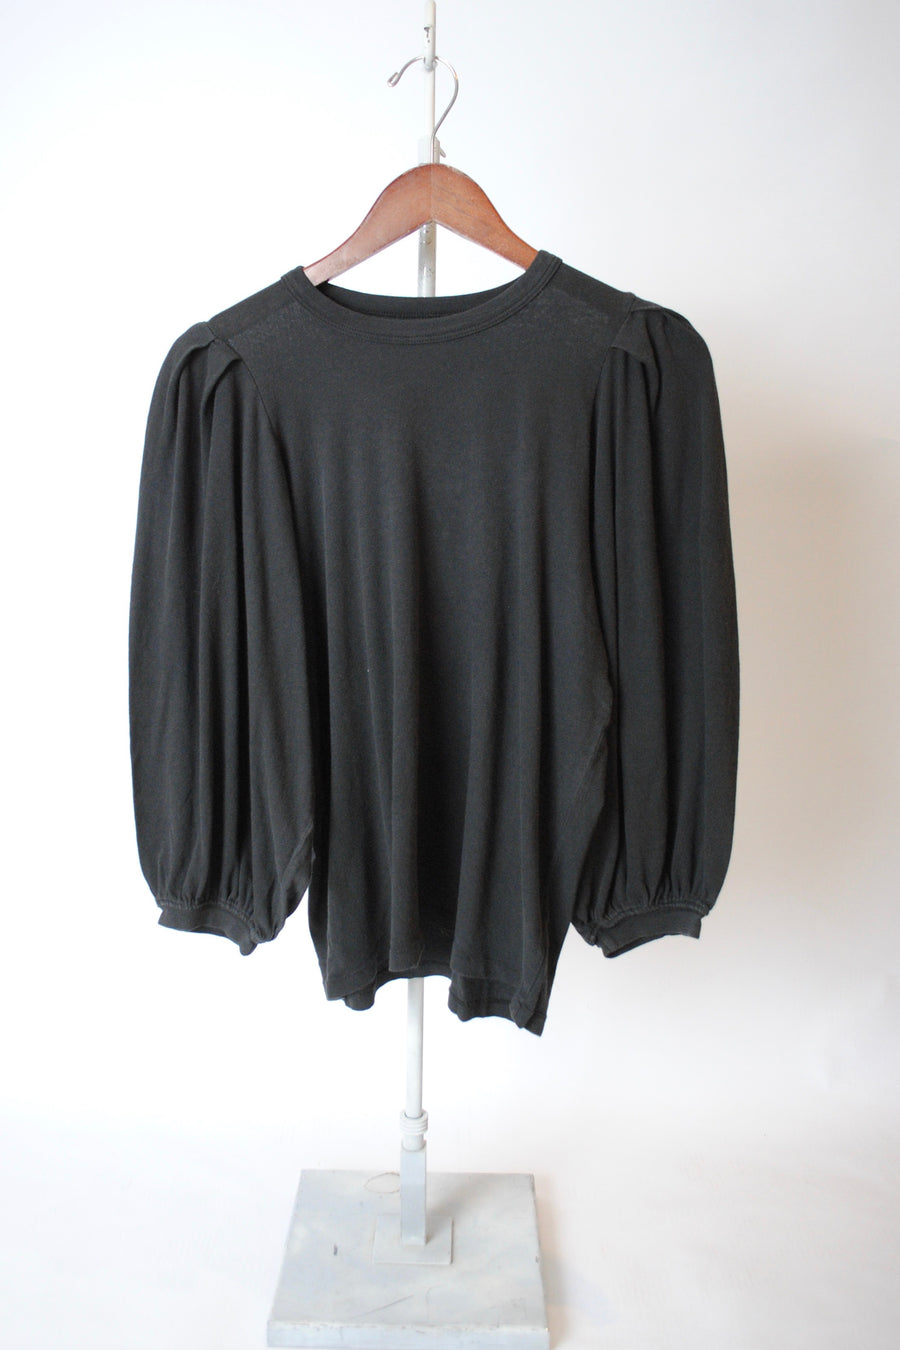 The Pleat Sleeve Tee - ALMOST BLACK